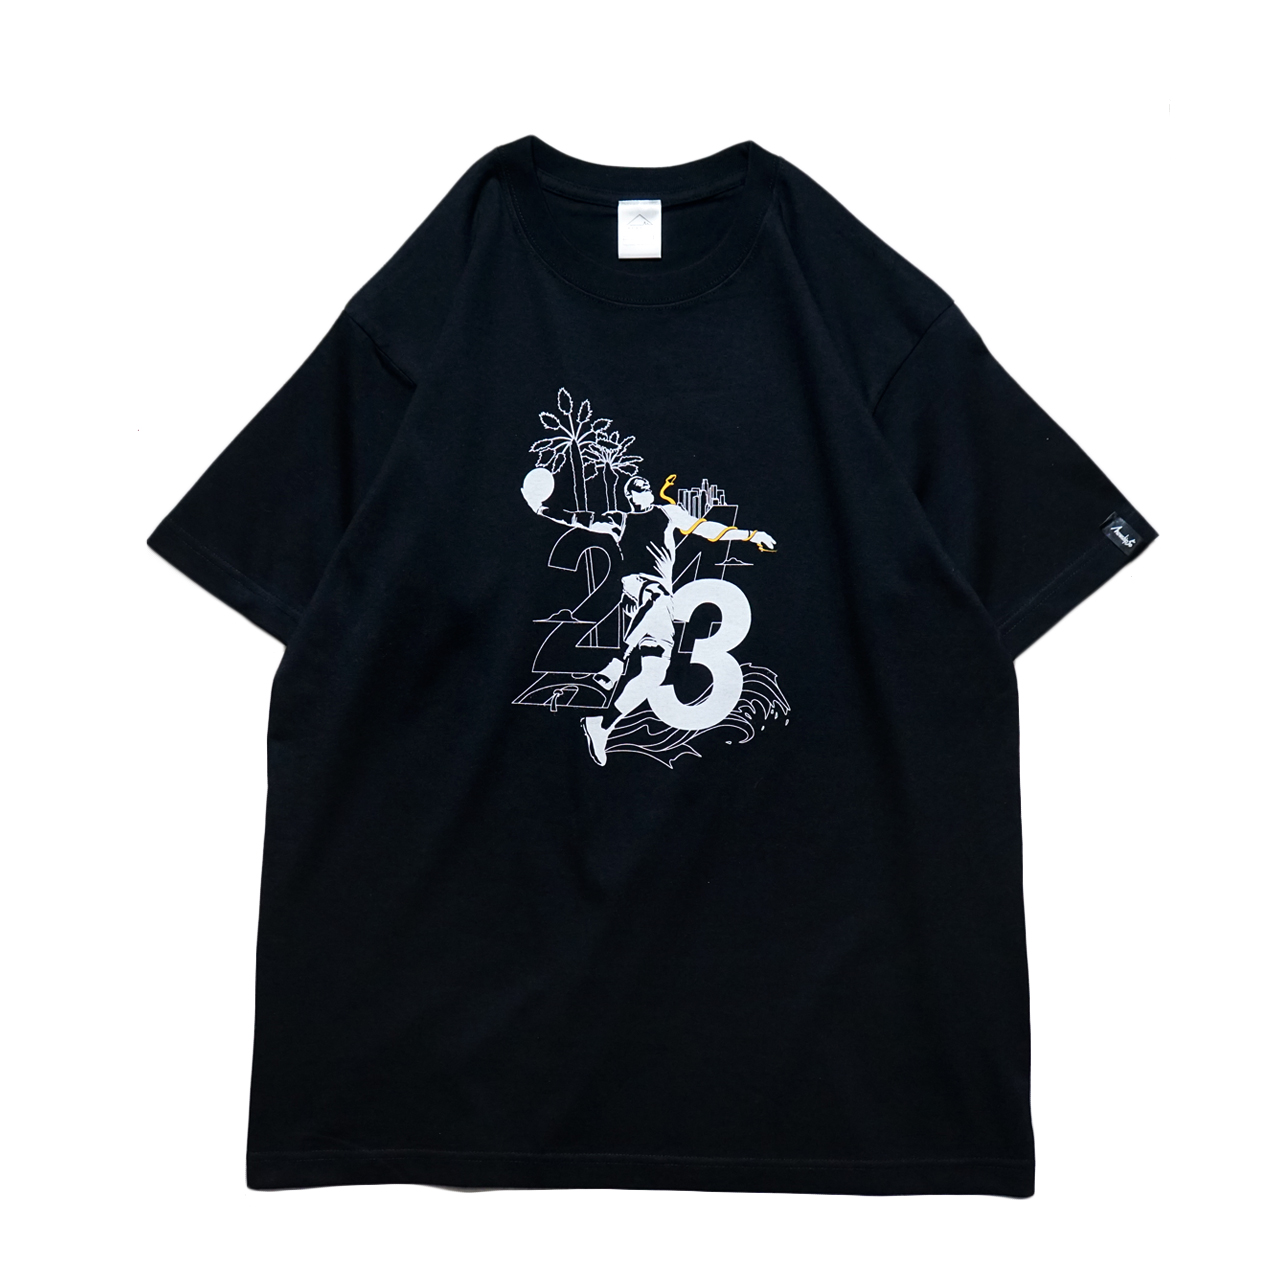 Mewship50 Los Angeles S/S CT (BK)